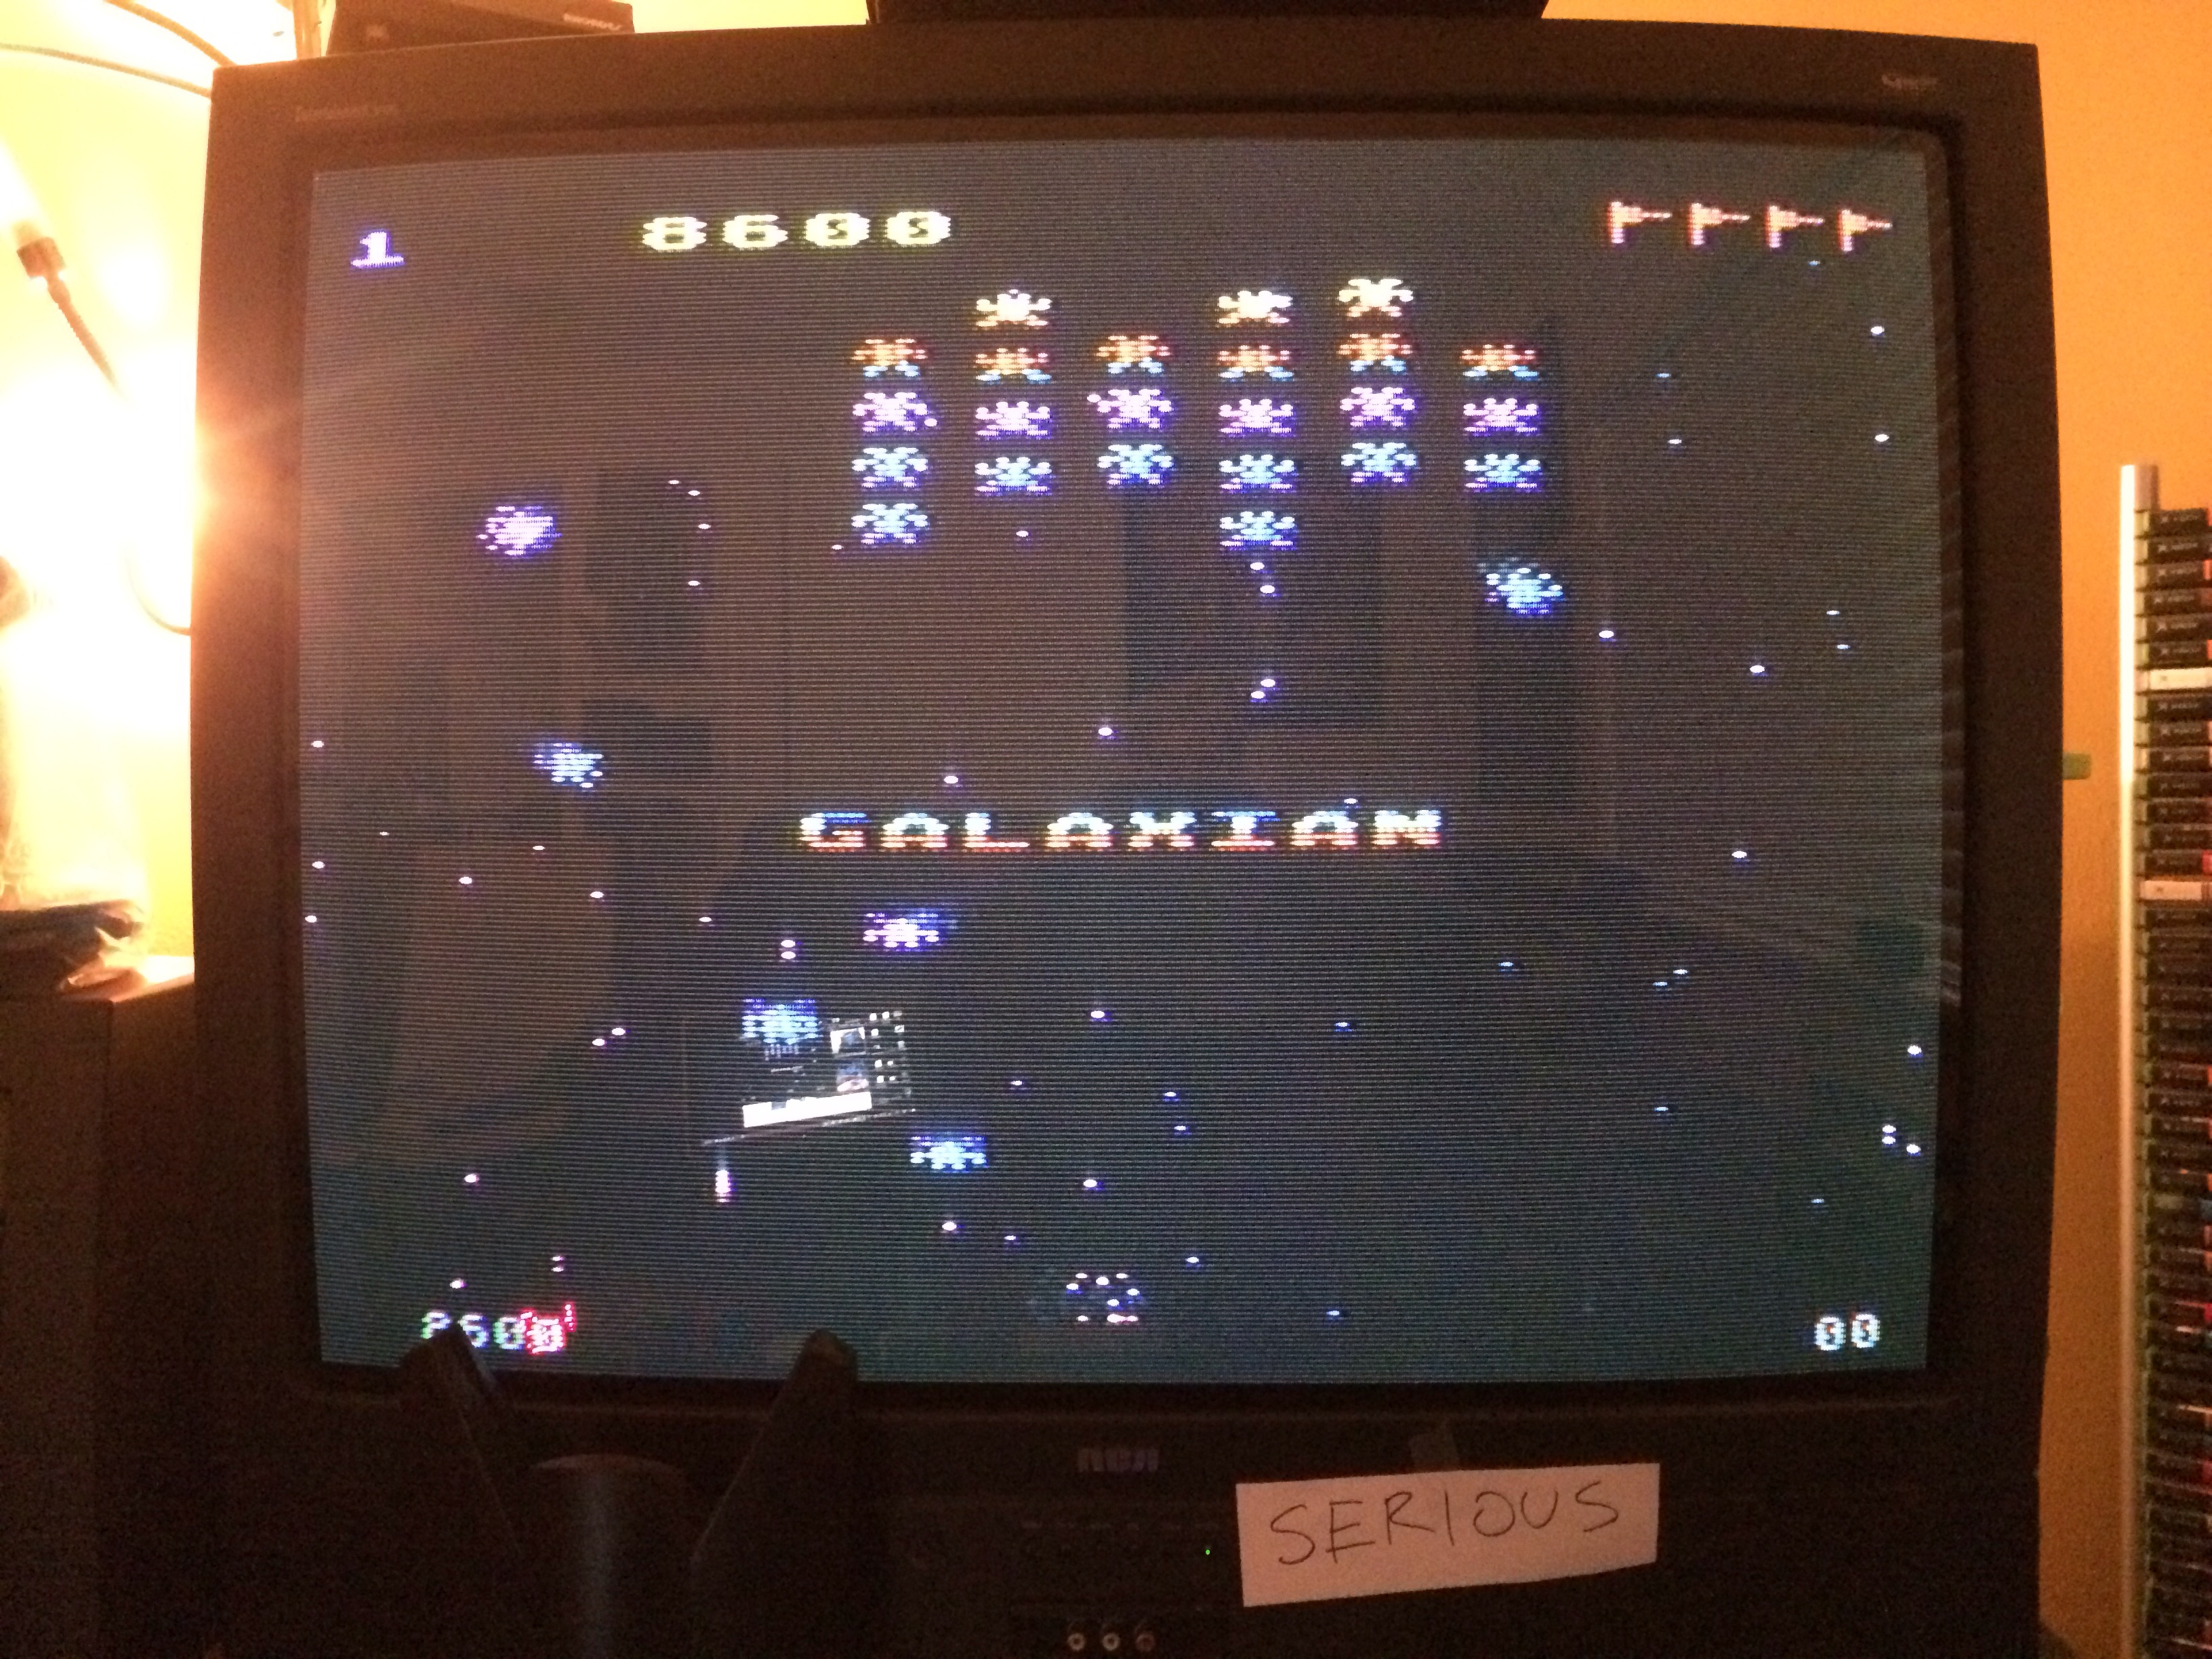 Galaxian: Skill Level 1 8,600 points